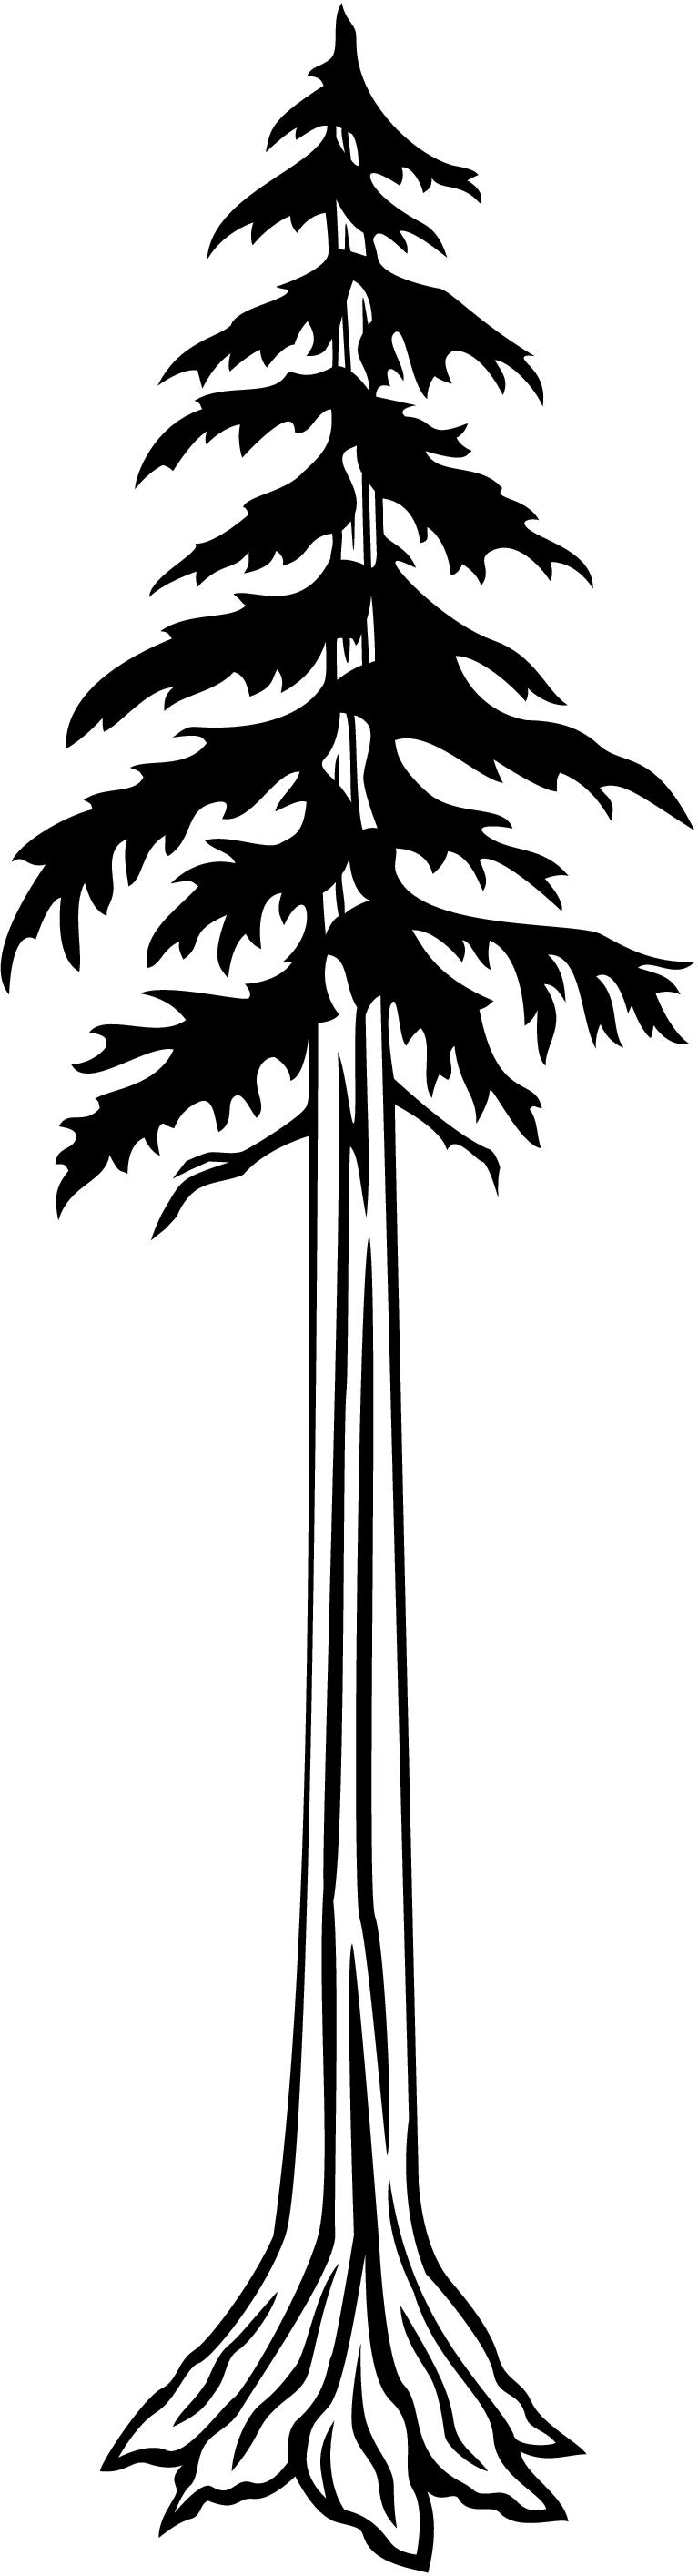 Pine Tree clipart redwood Redwood cliparts Tree Clipart Redwood